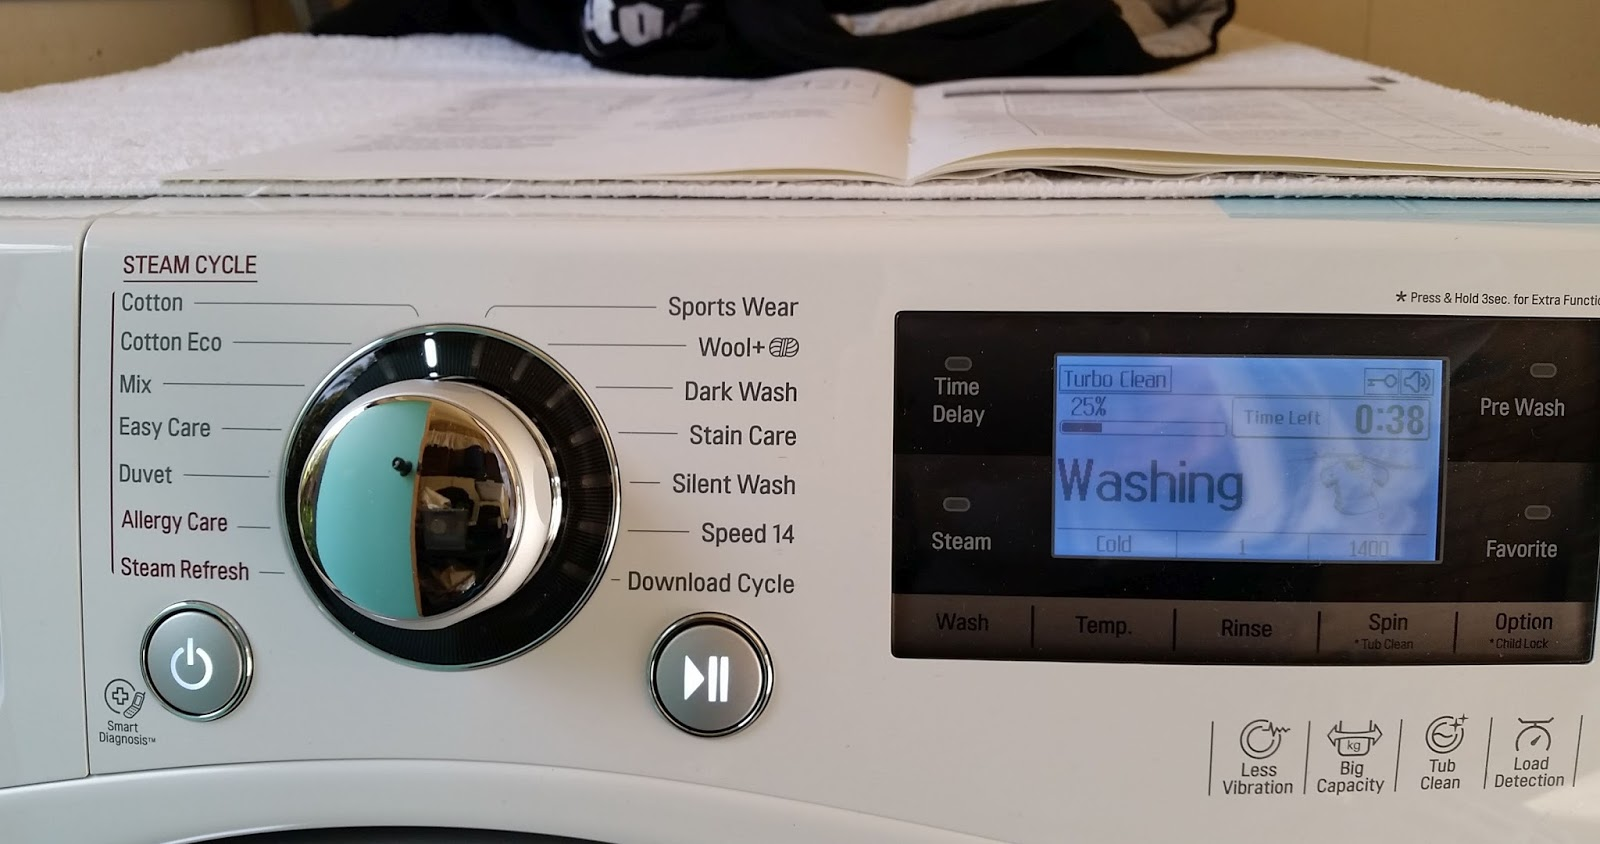 Lg washer download cycle